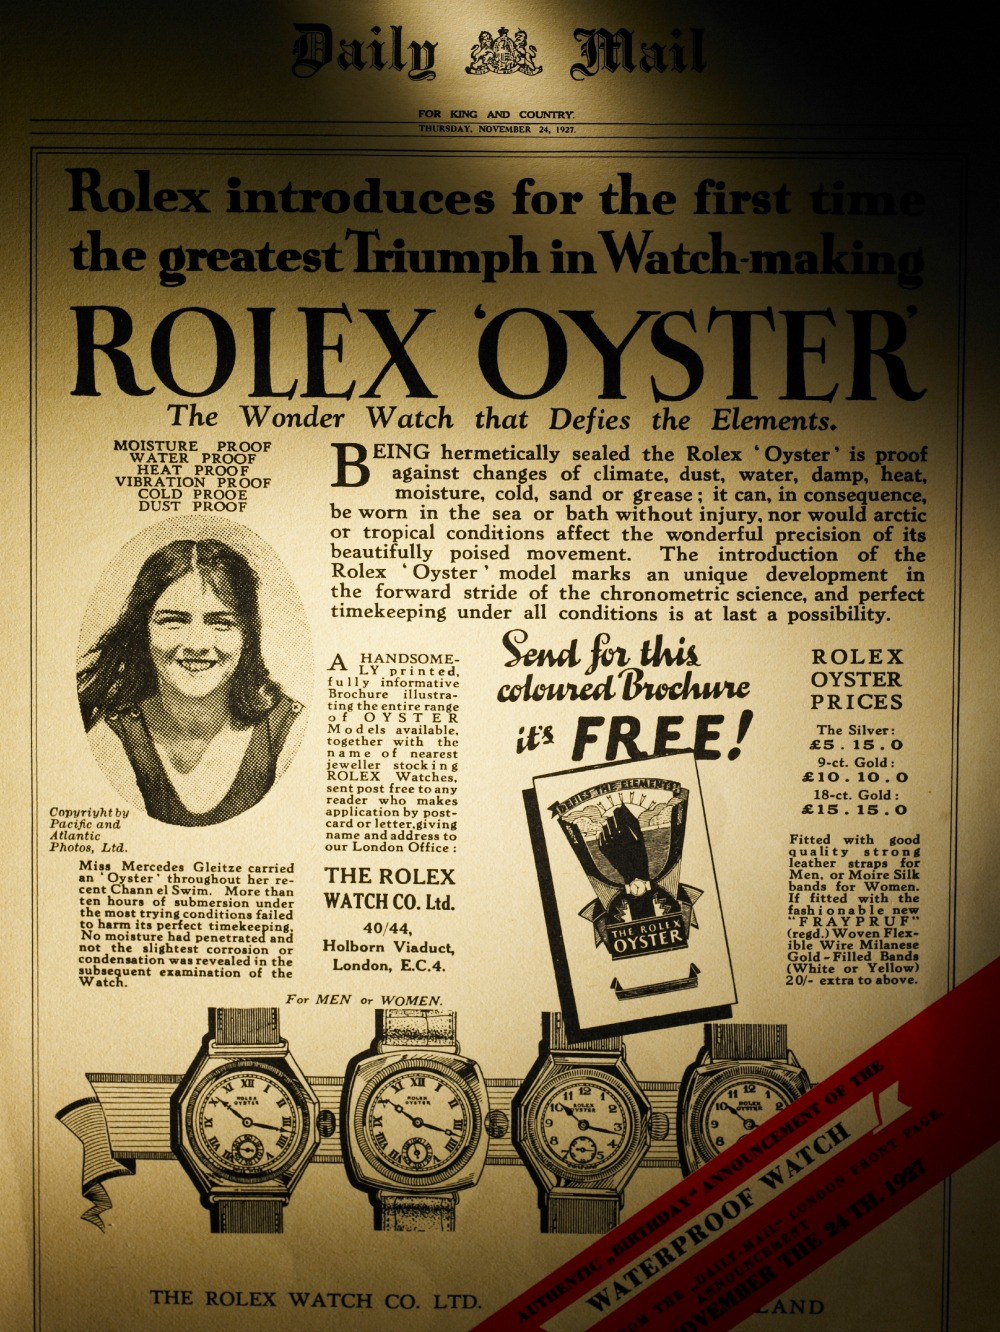 DAILY-MAIL-1927-Rolex-Oyster